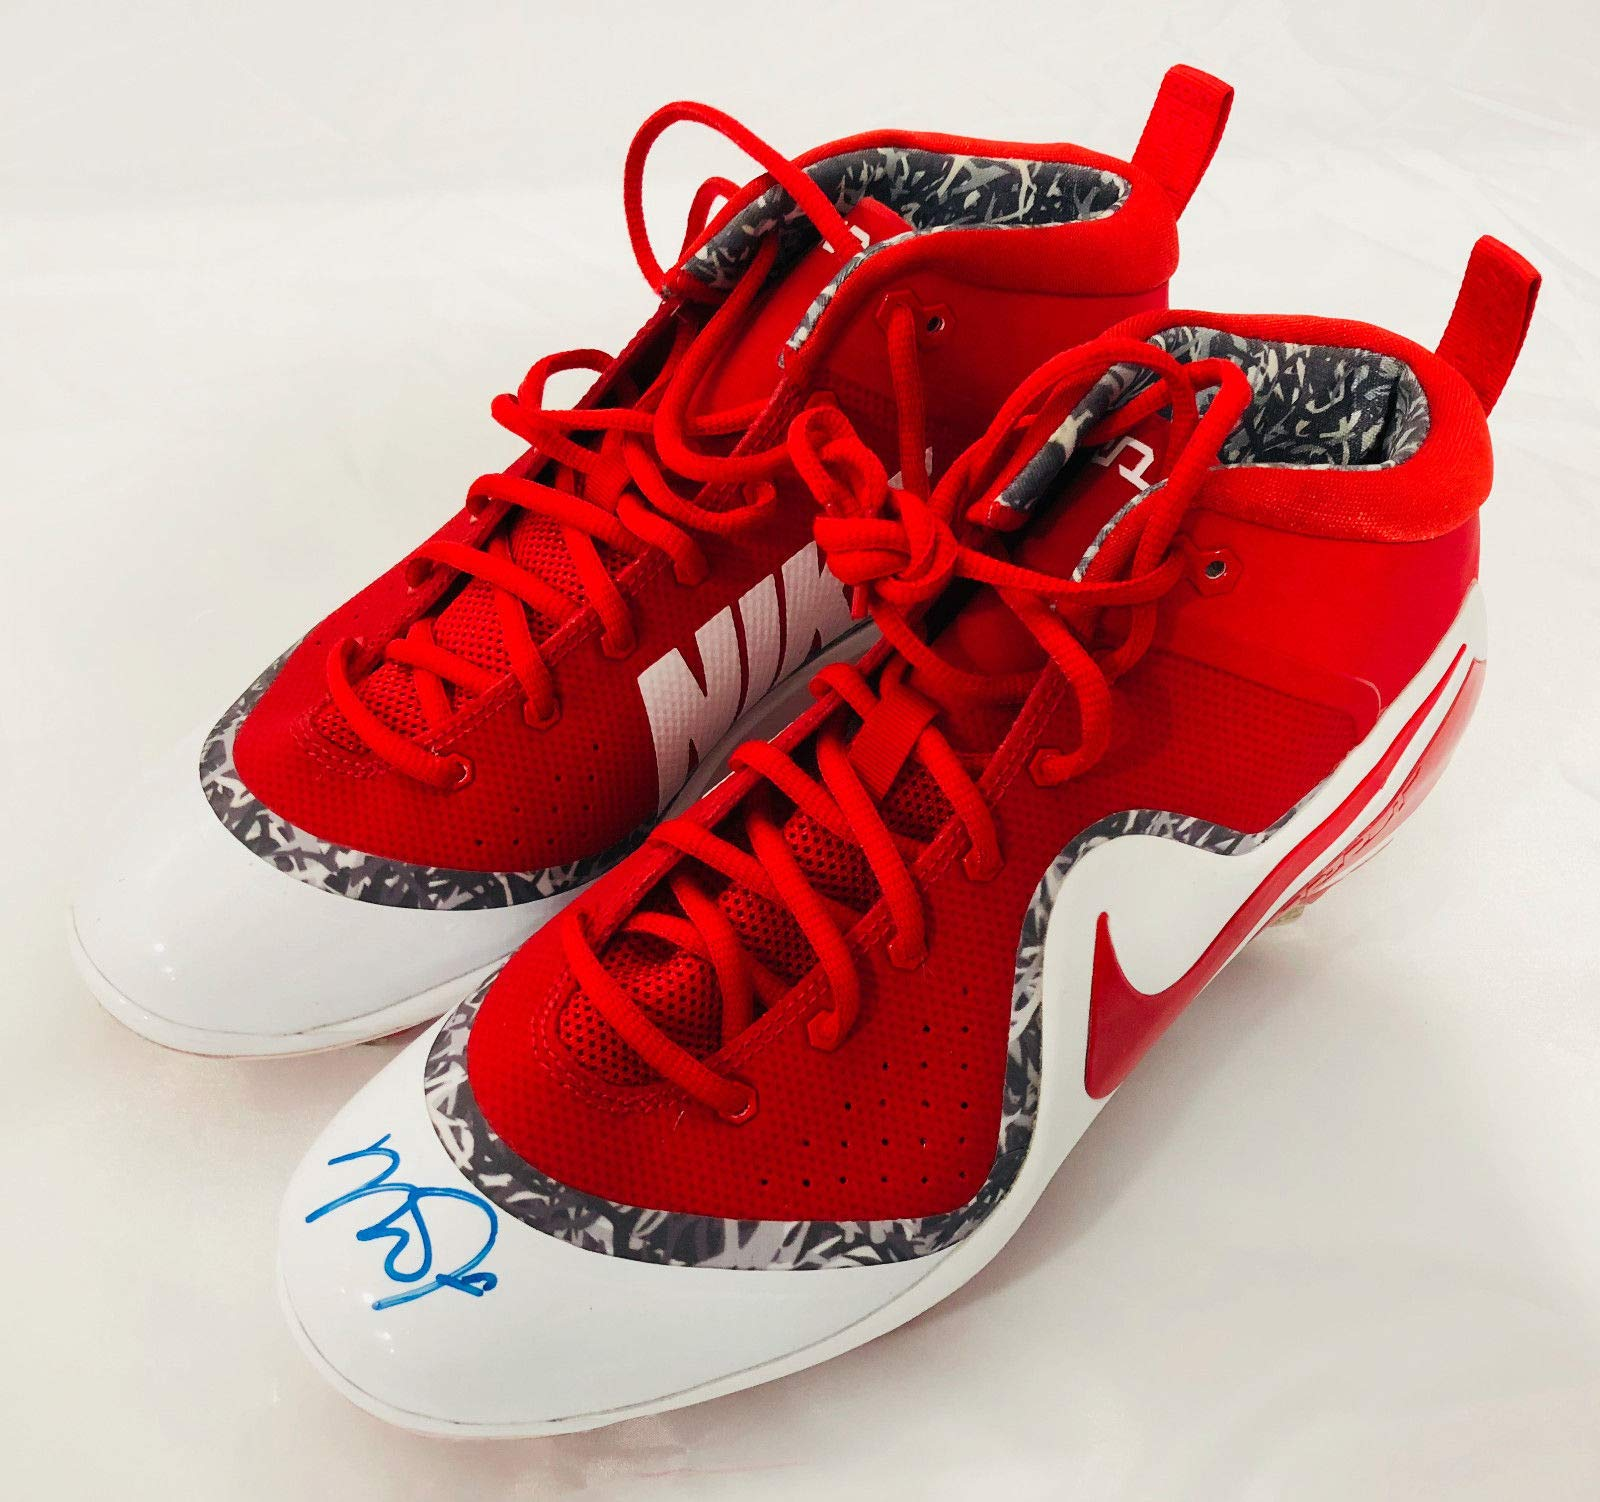 Mike Trout Los Angeles Angels Signed Autographed Nike Game Model Cleats MLB